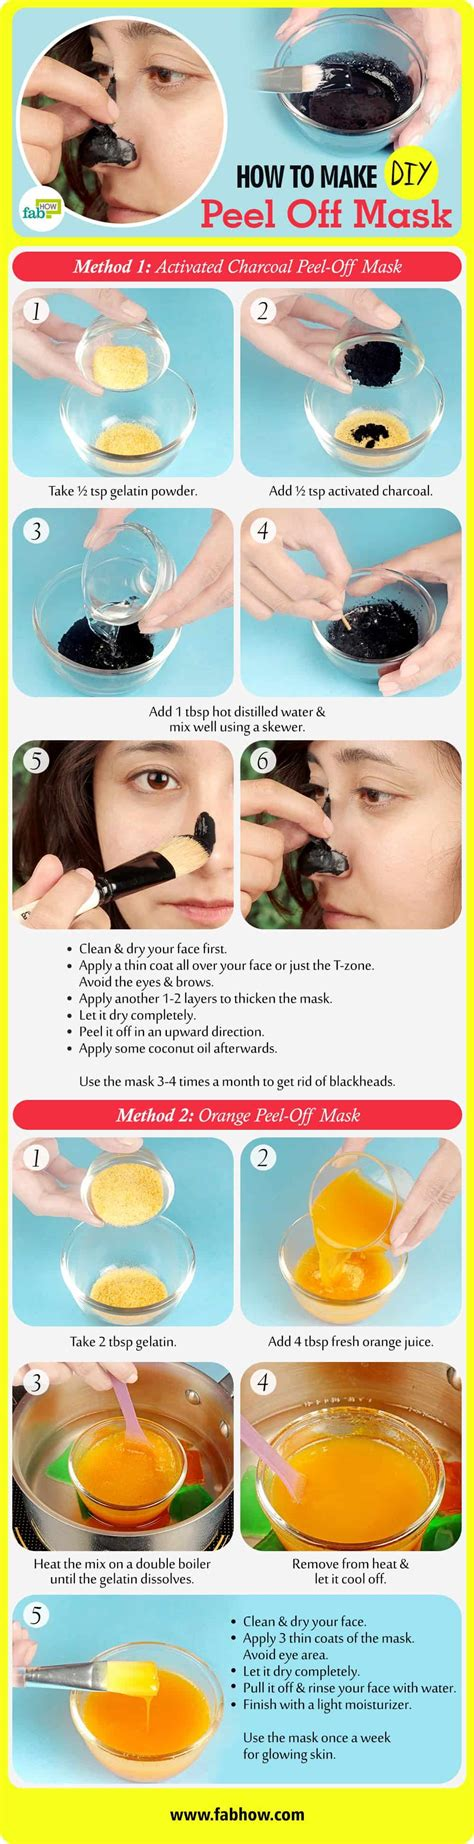 Masker Peel 5 best diy peel masks to clean pores and blackheads fab how